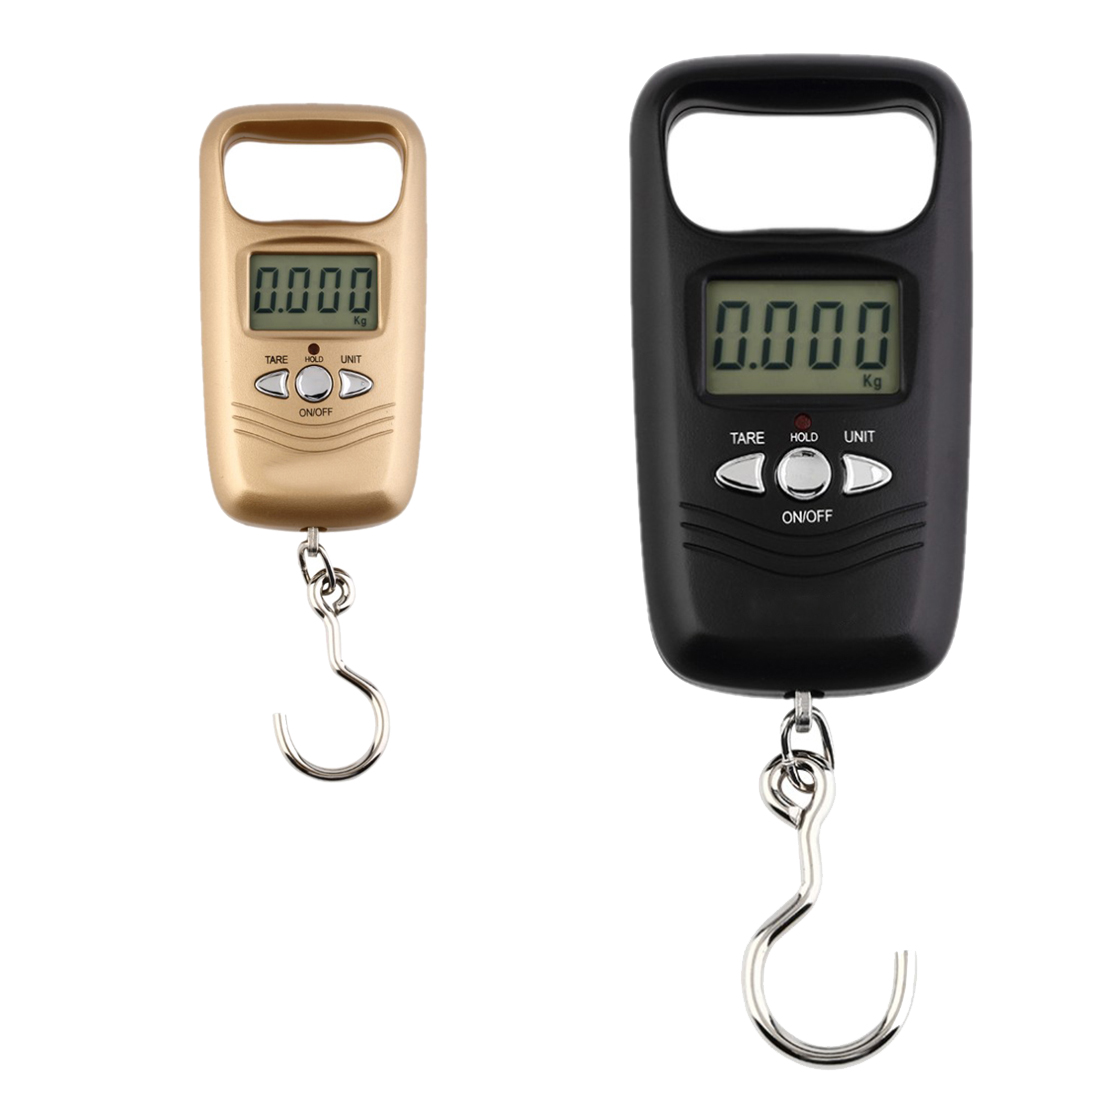 50kg/1g LCD Digital Hanging Luggage Weighting Fishing Hook Scale Electron Pocket Portable Scale сумка st vatican florentino a34 s149ft a34 s149ft 2014